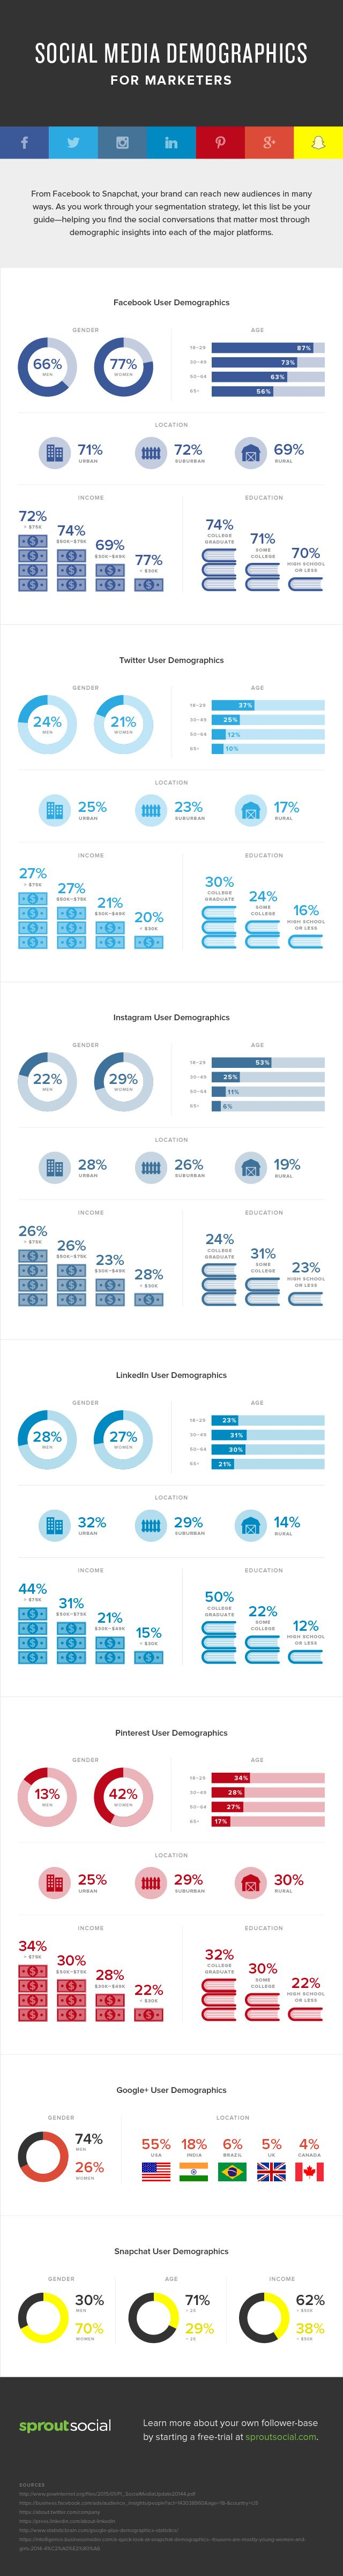 Social Media Demographics for Marketers #infographic #SocialMedia #Marketing